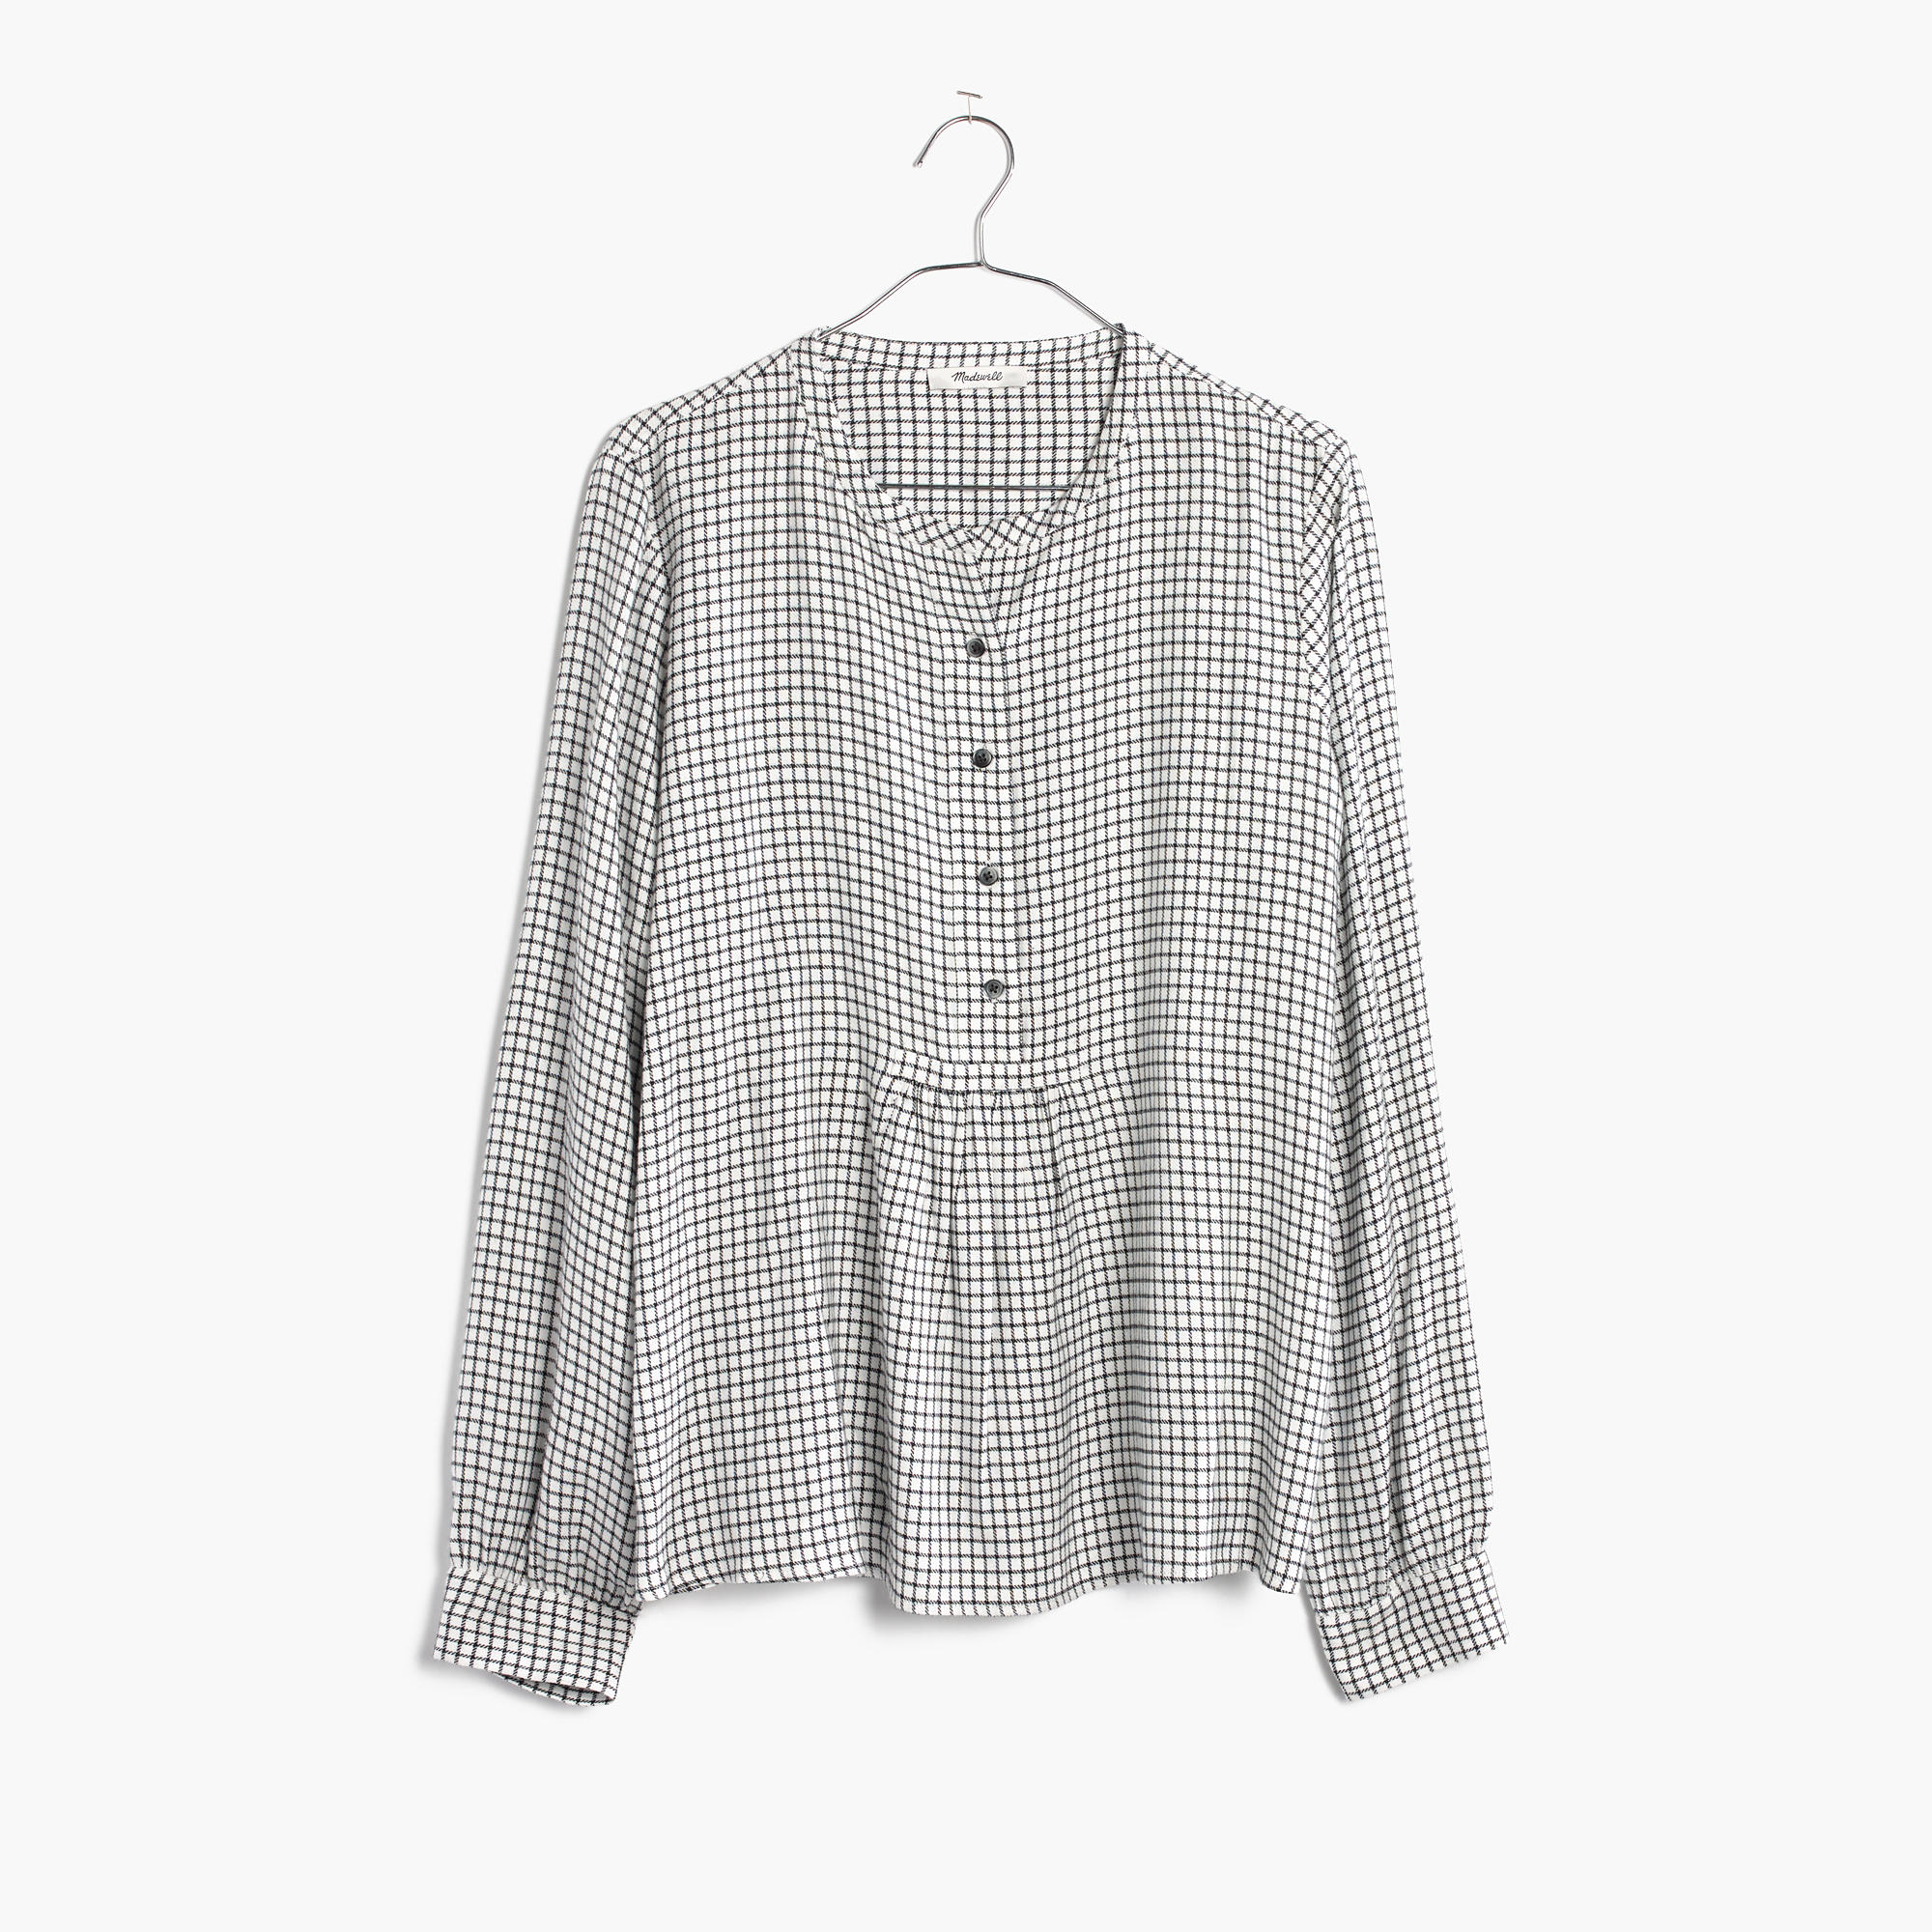 Madewell top—Top 5 of the week